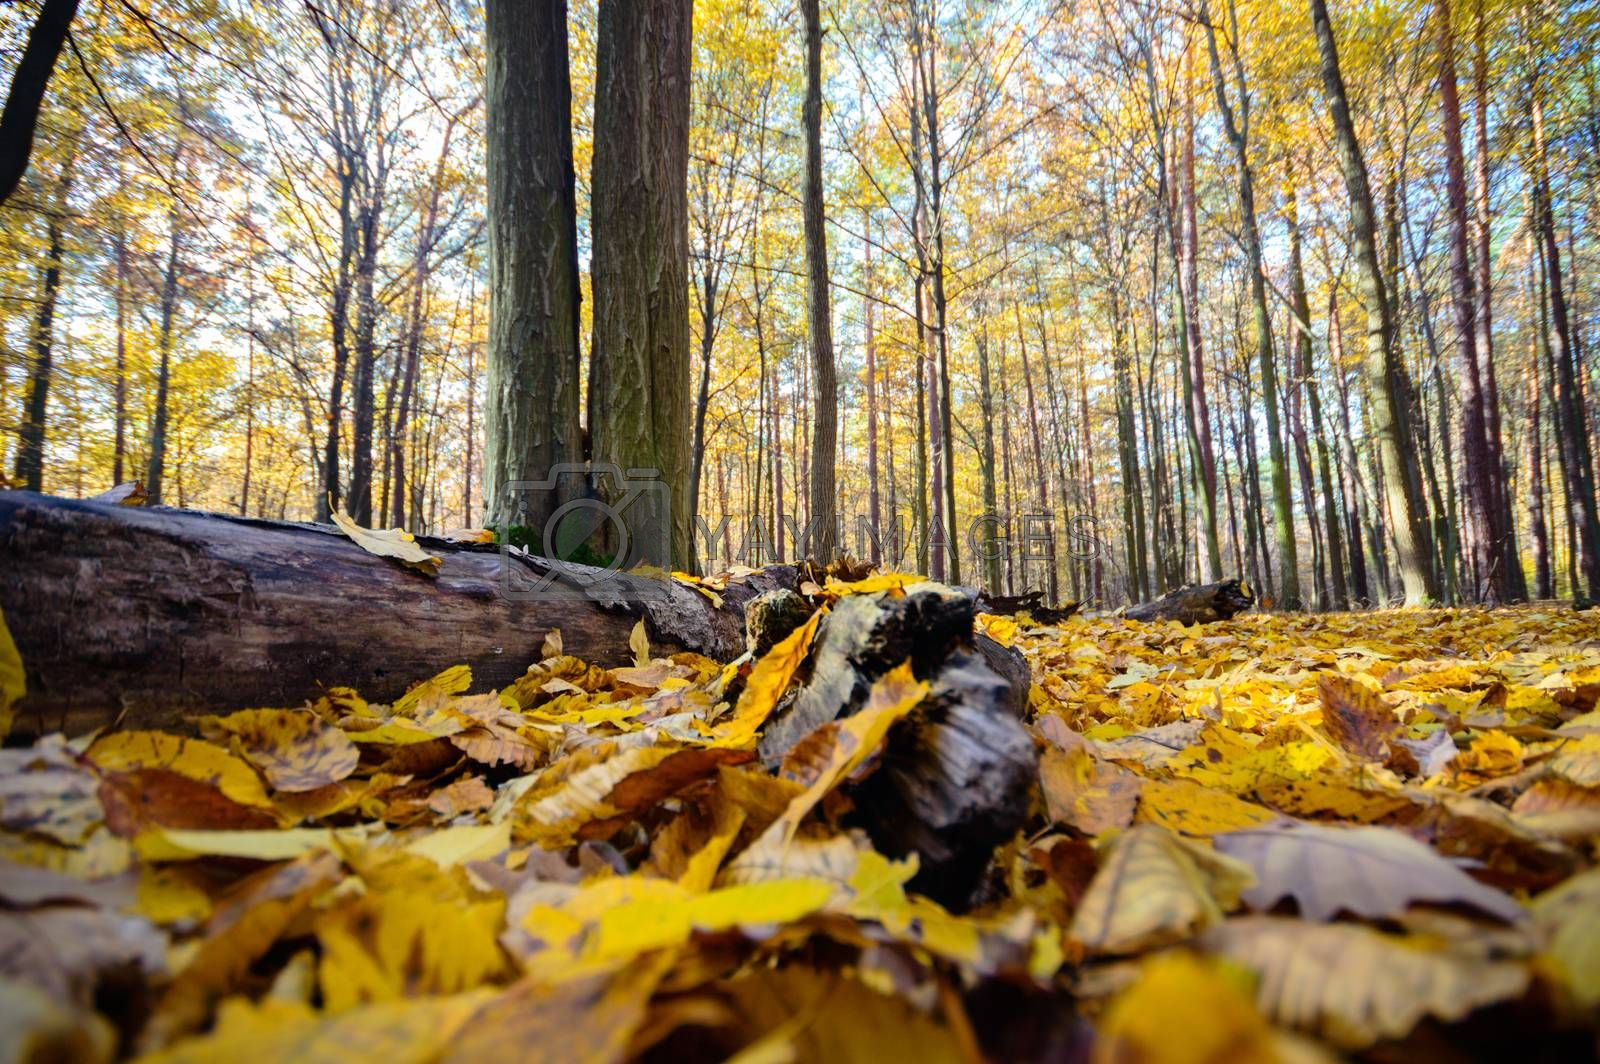 sunlight in the autumn forest, nature series